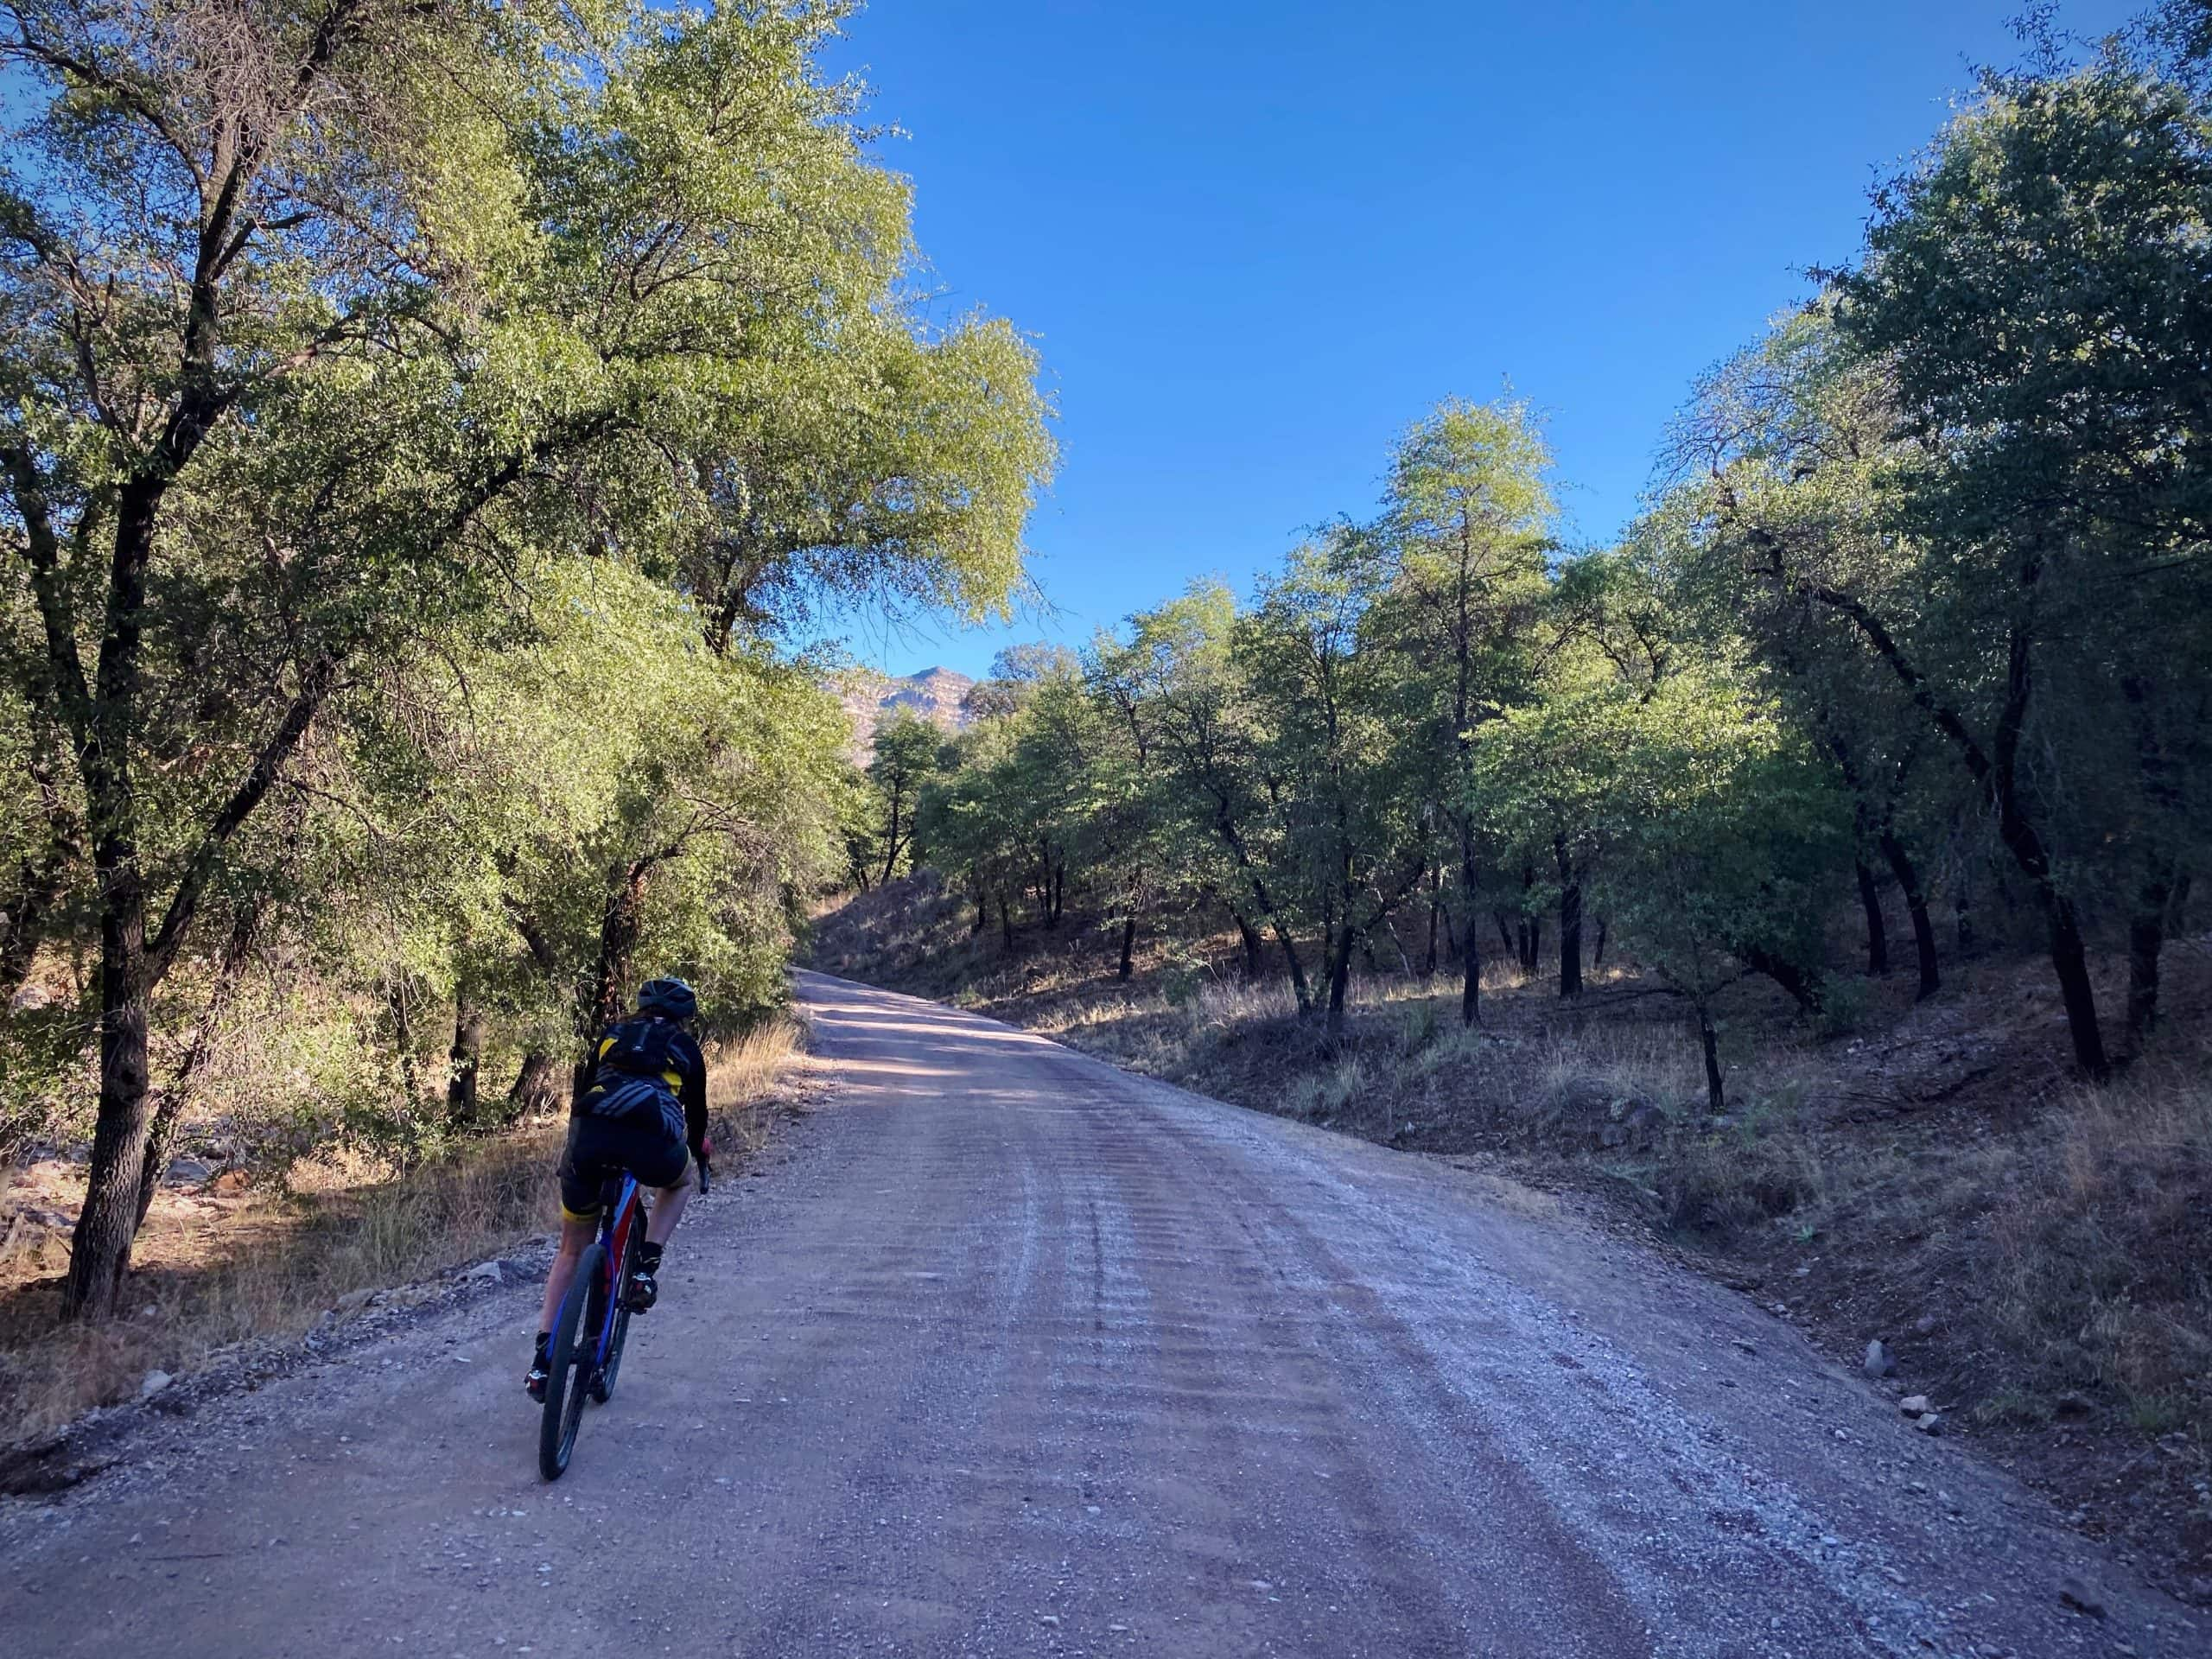 Cyclist on Ruby road, gravel, near Sycamore Canyon entrance with oak and sycamore trees.